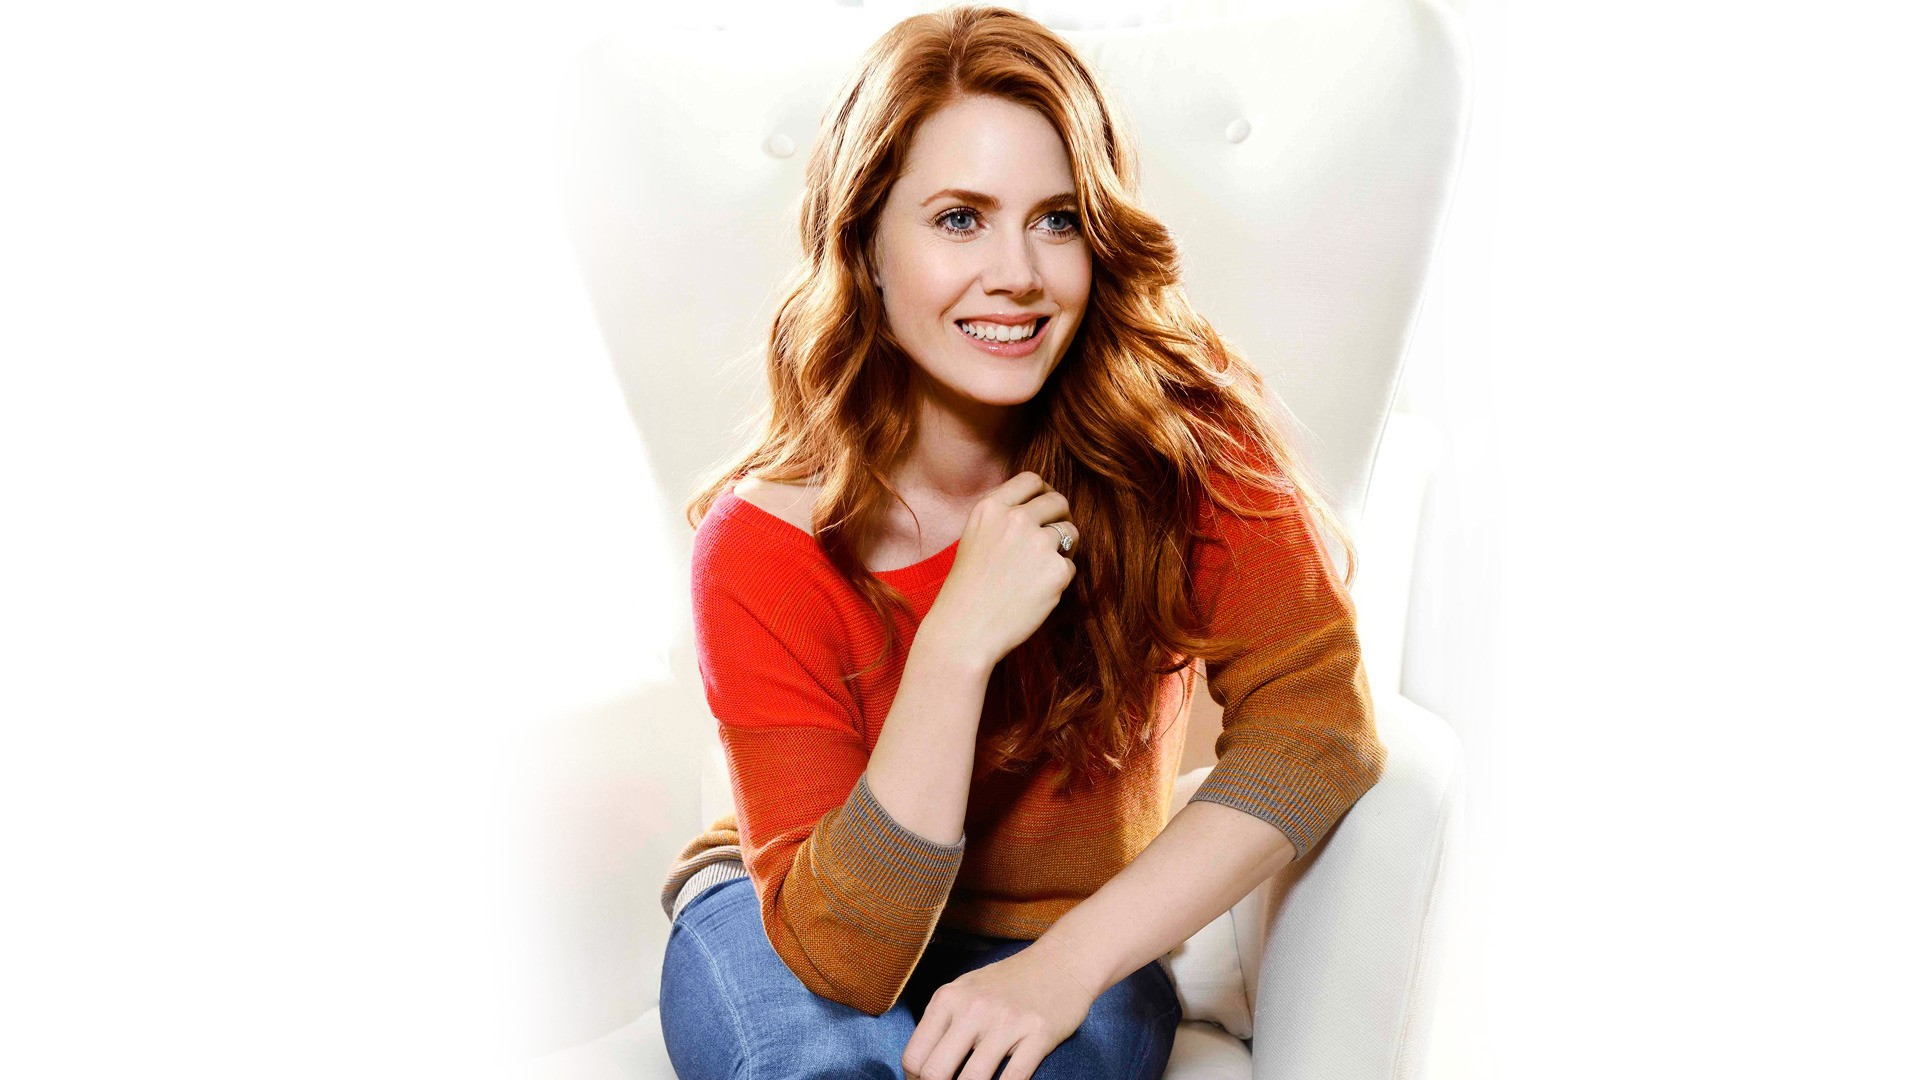 fantastic amy adams lovely sitting pose still background mobile free hd download photo